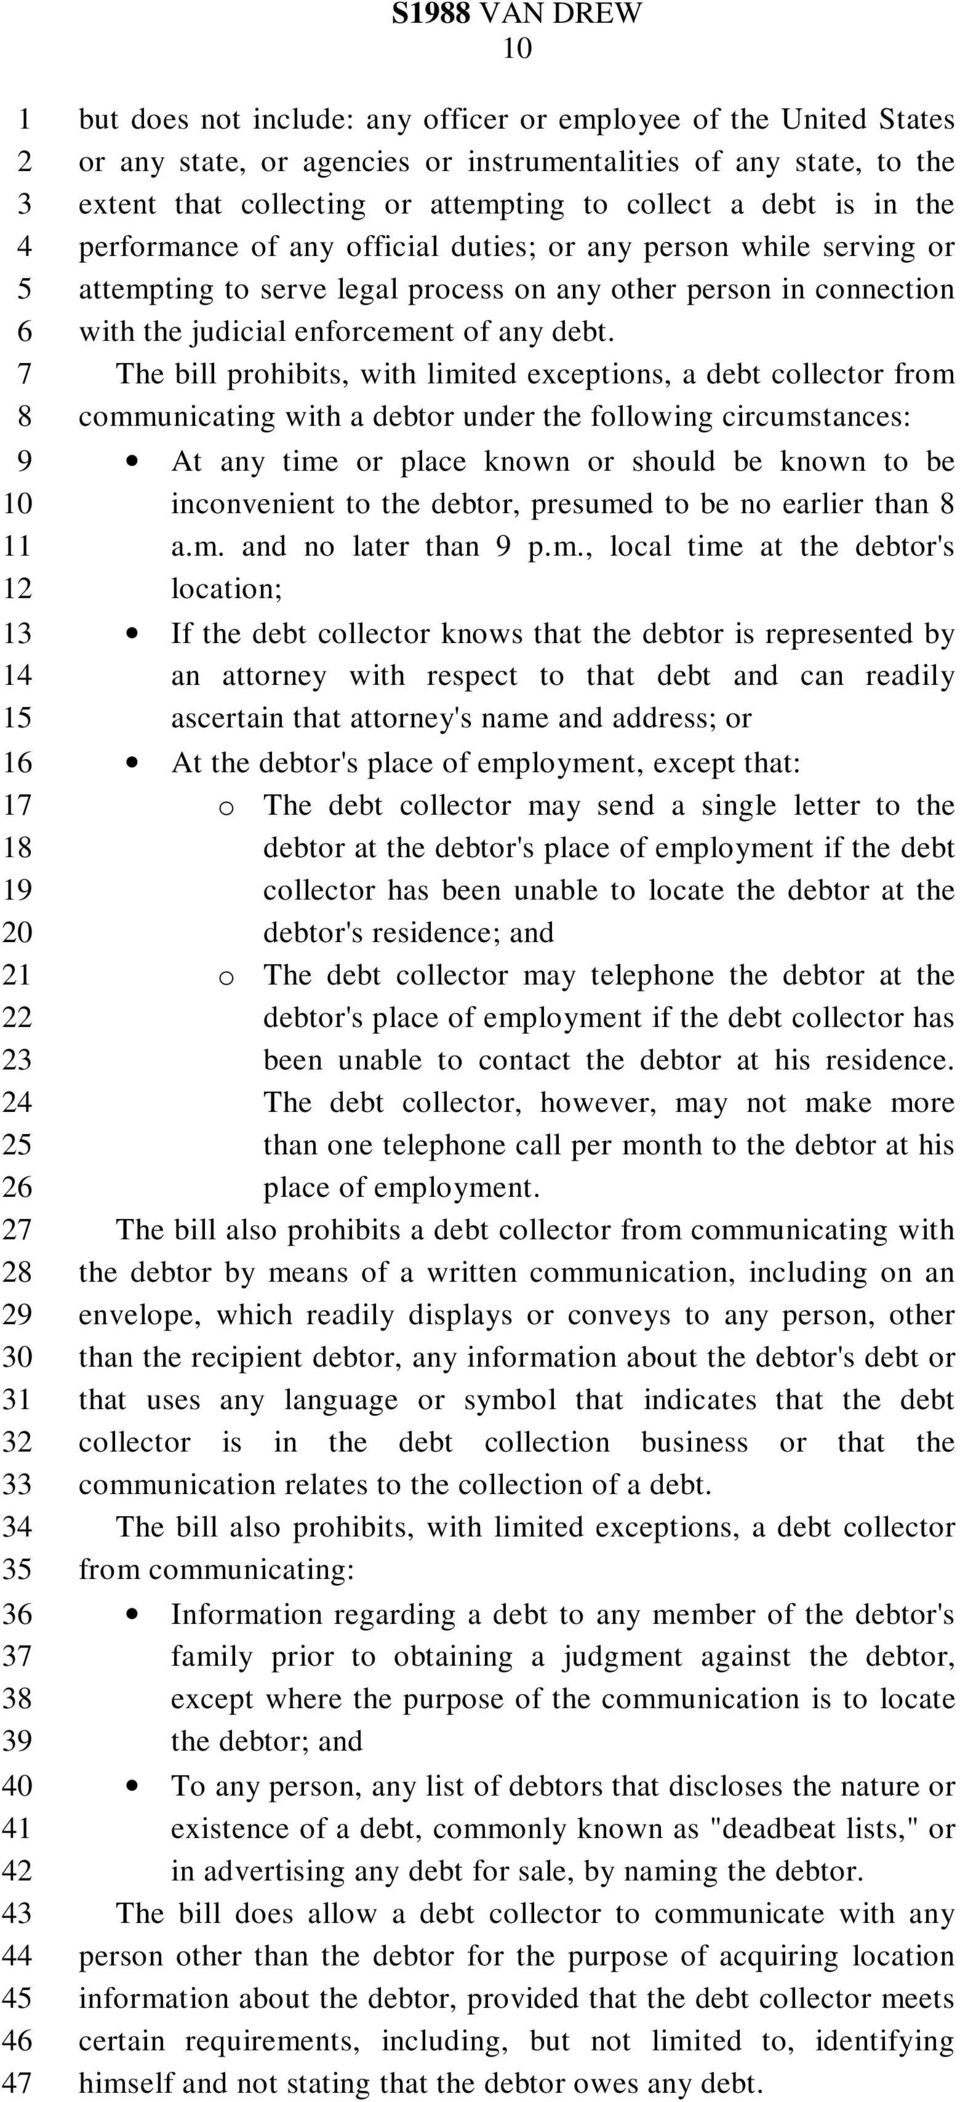 The bill prohibits, with limited exceptions, a debt collector from communicating with a debtor under the following circumstances: At any time or place known or should be known to be inconvenient to